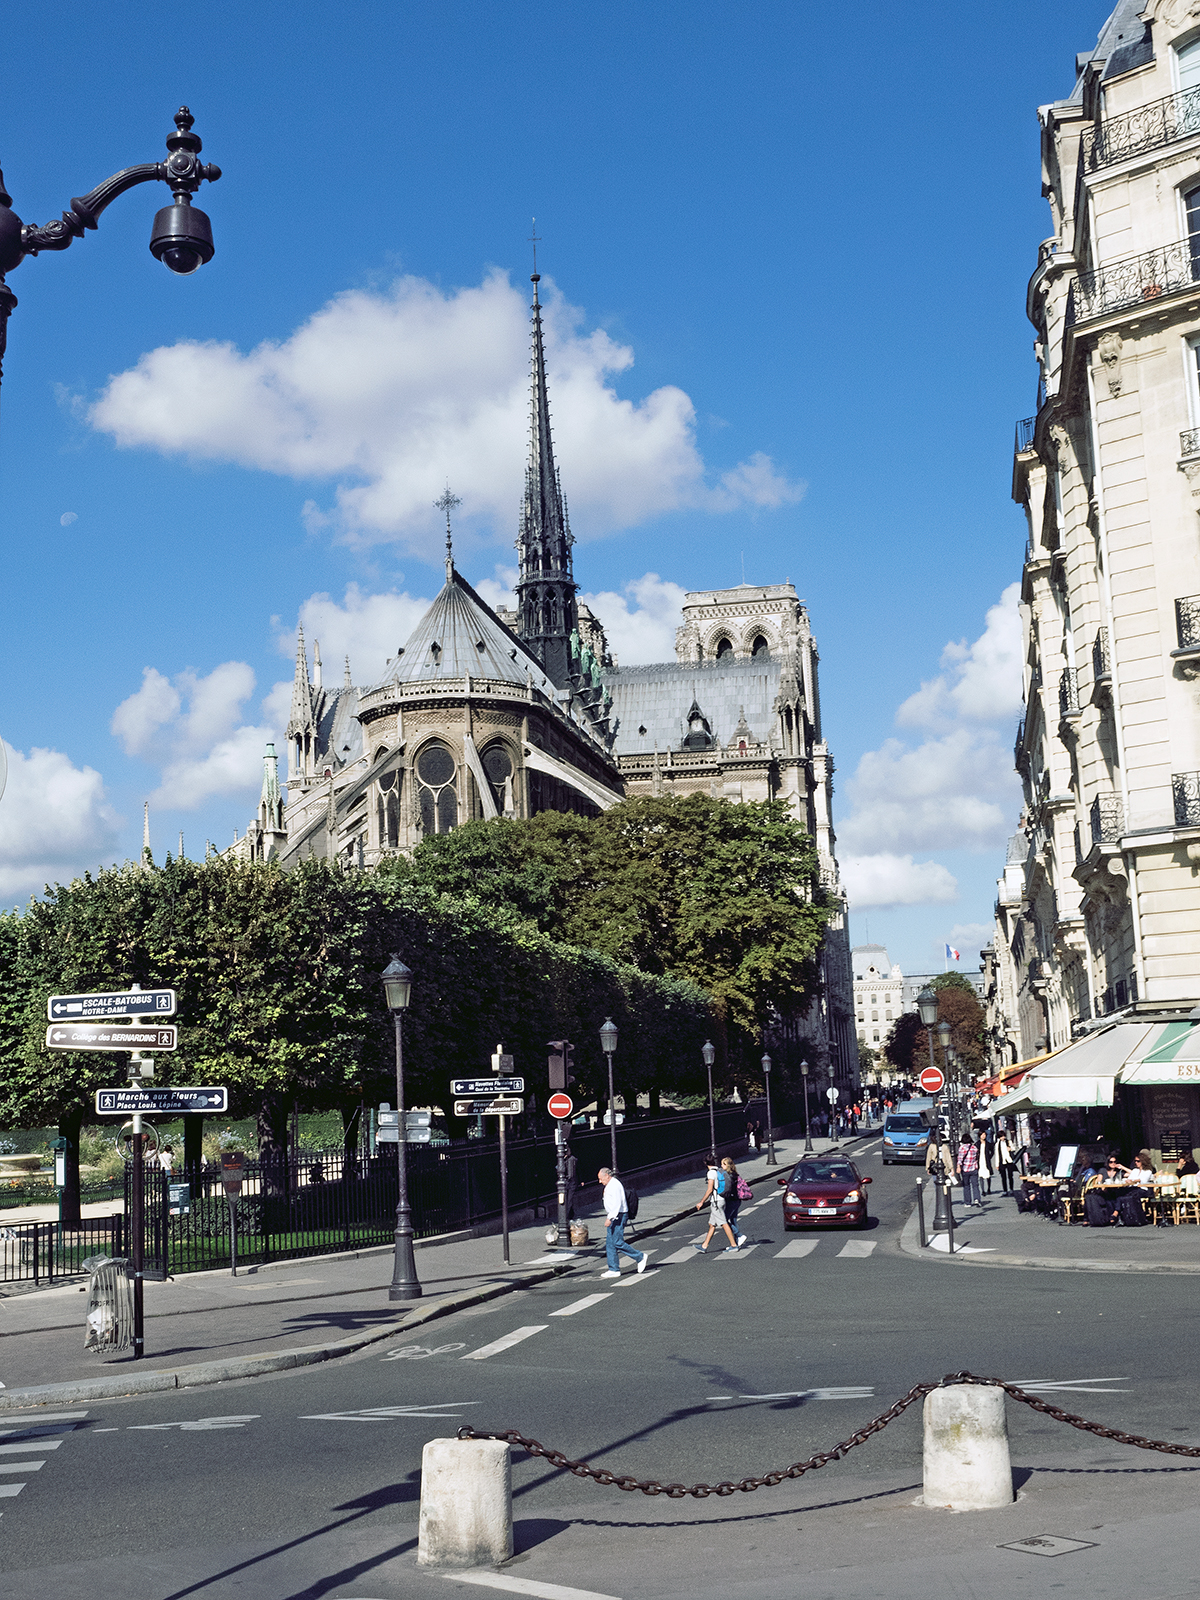 Paris ultimate city travel guide, Notre Dame Inspiring Wit